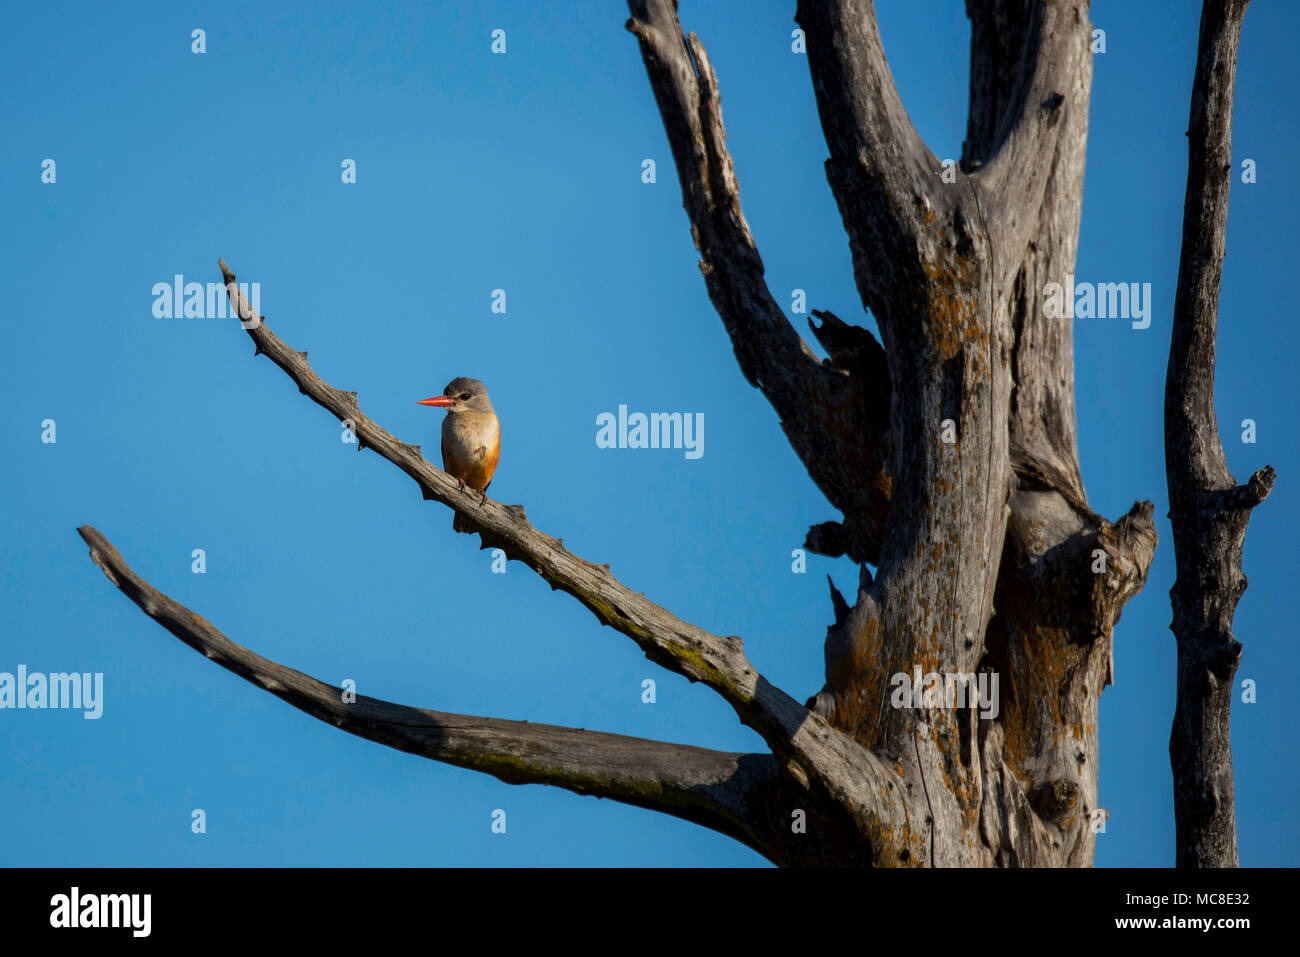 KINGFISHER (HALCYON SP.) PERCHED ON BRANCH, ZAMBIA - Stock Image